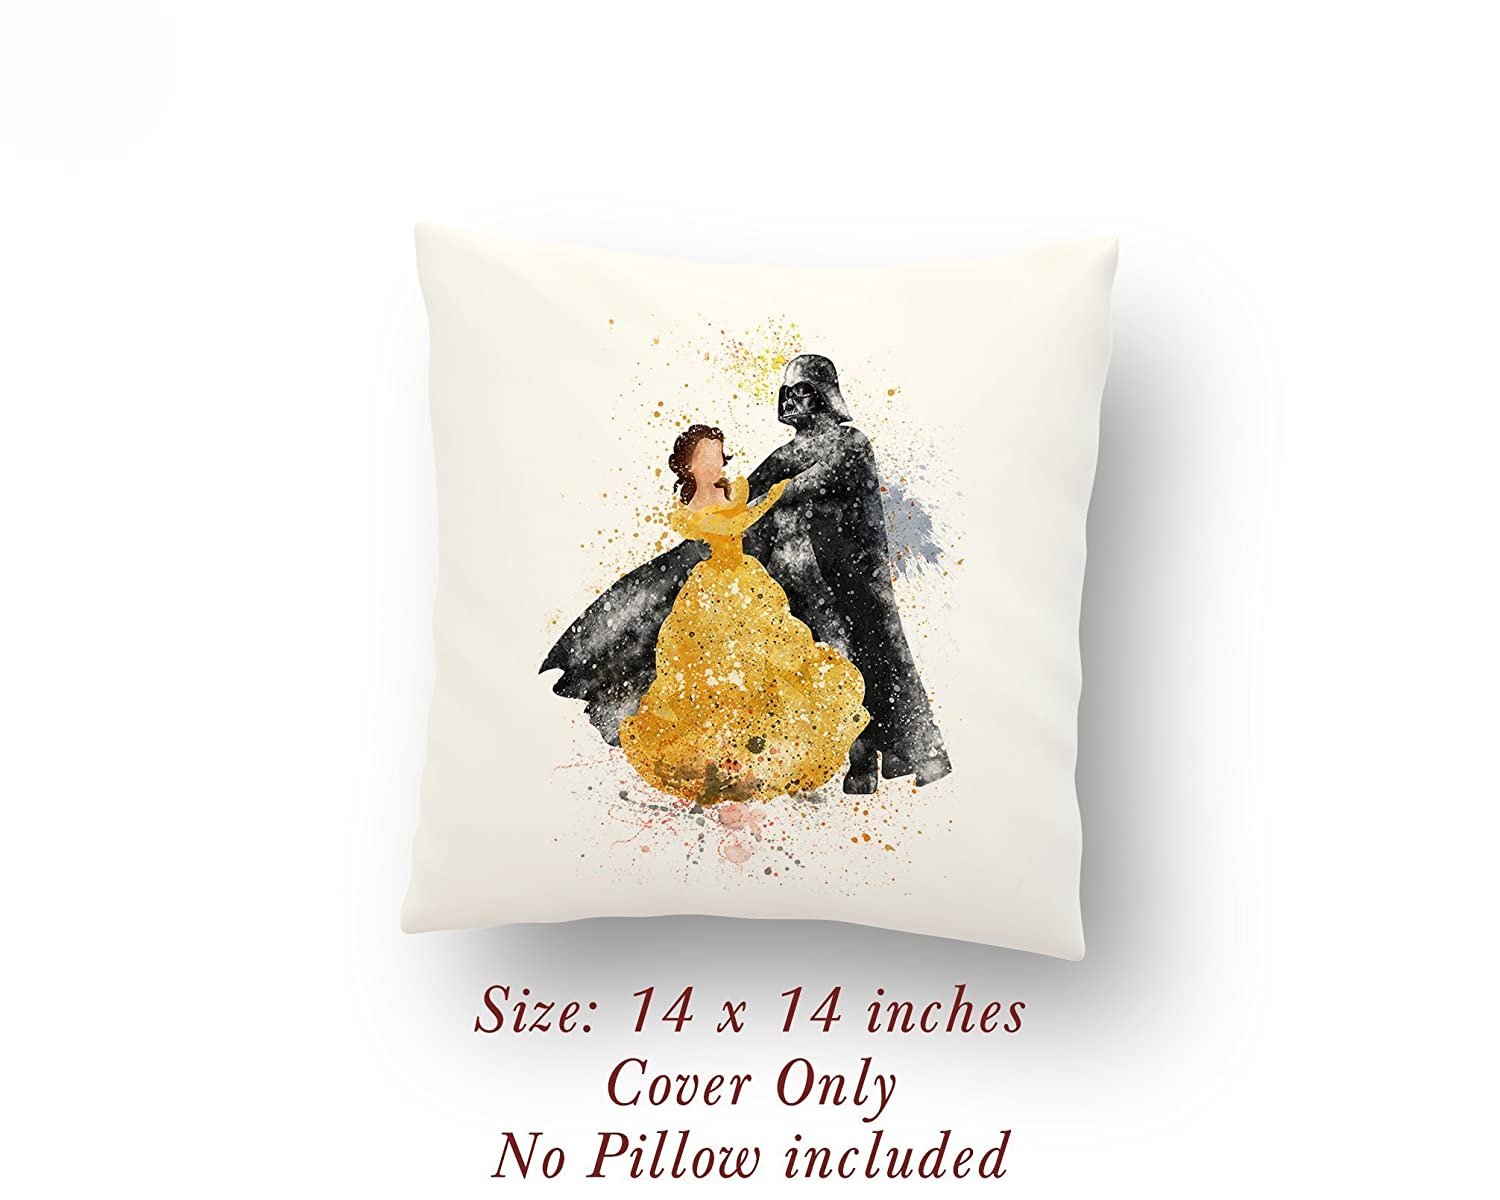 B07389R8JD Star Wars Darth Vader and Belle Beauty and the Beast 14 x 14 inches Pillow Cover 71S50ykbuTL